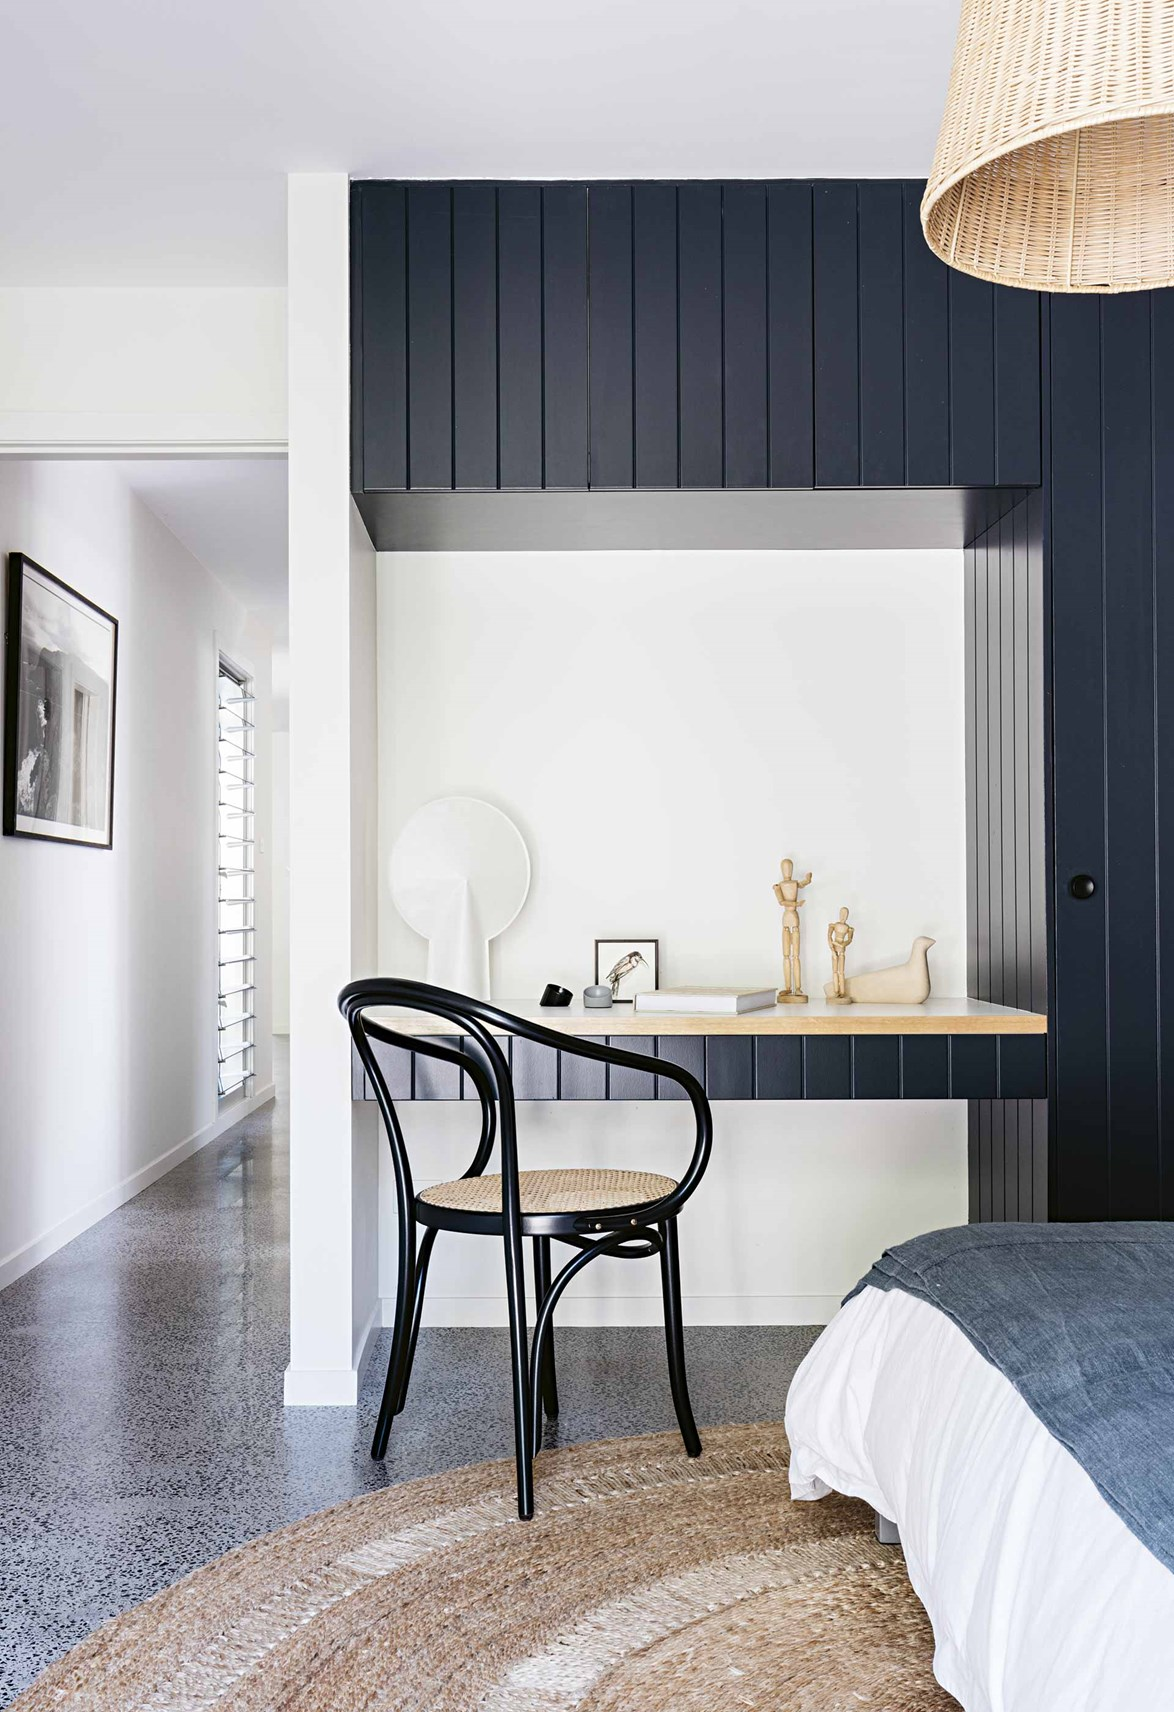 """<p>**TO TRANSFORM A WARDROBE INTO A WONDERFUL FEATURE**<p> <p>A panelled wardrobe becomes a feature wall in its own right in this [coastal home on McMaster's Beach](https://www.homestolove.com.au/macmasters-beach-house-18226